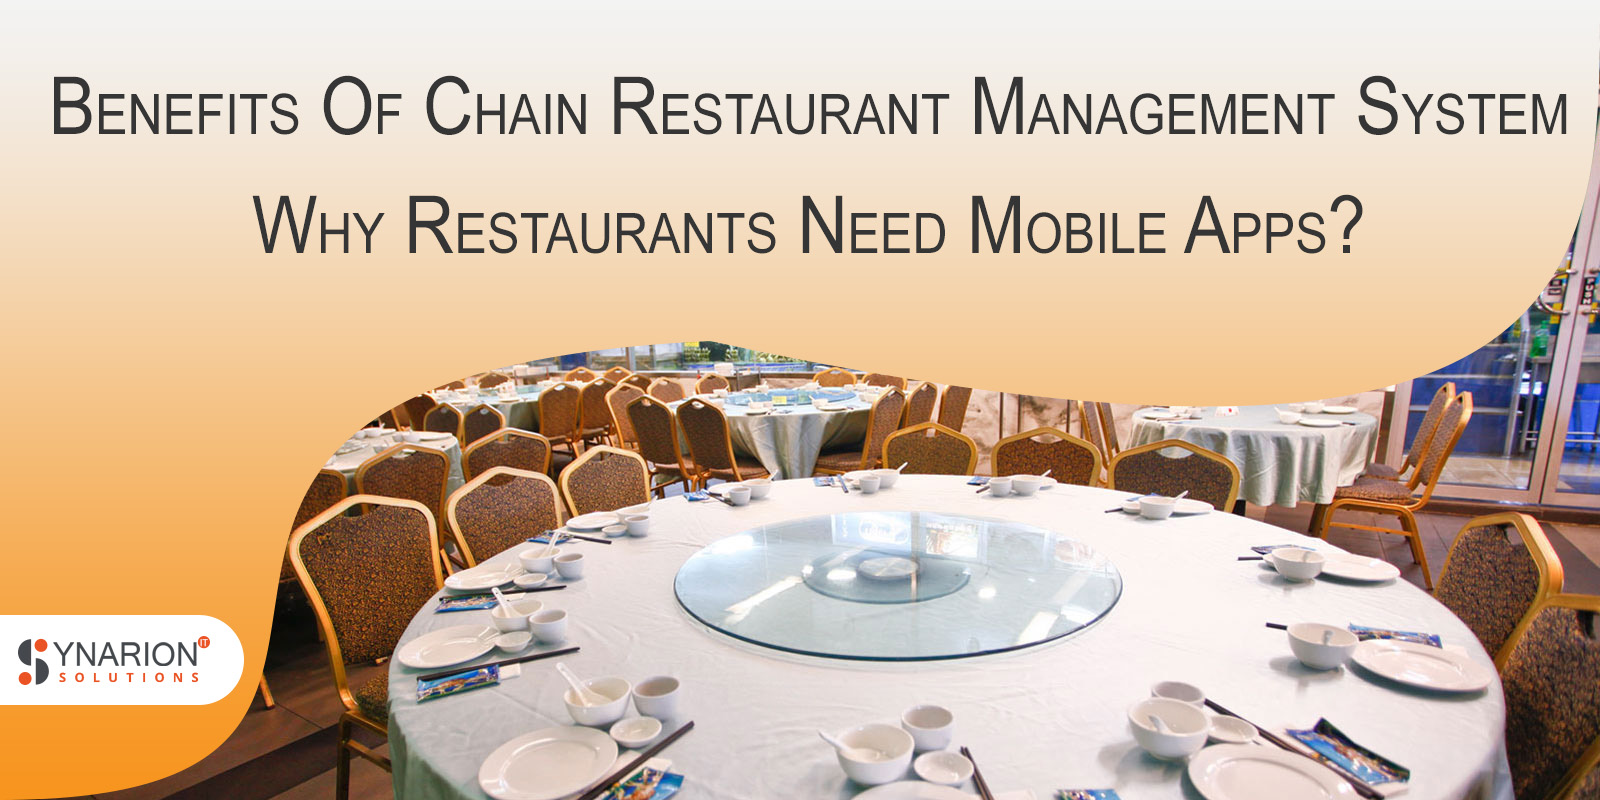 Benefits Of Chain Restaurant Management System: Why Restaurants Need Mobile Apps?